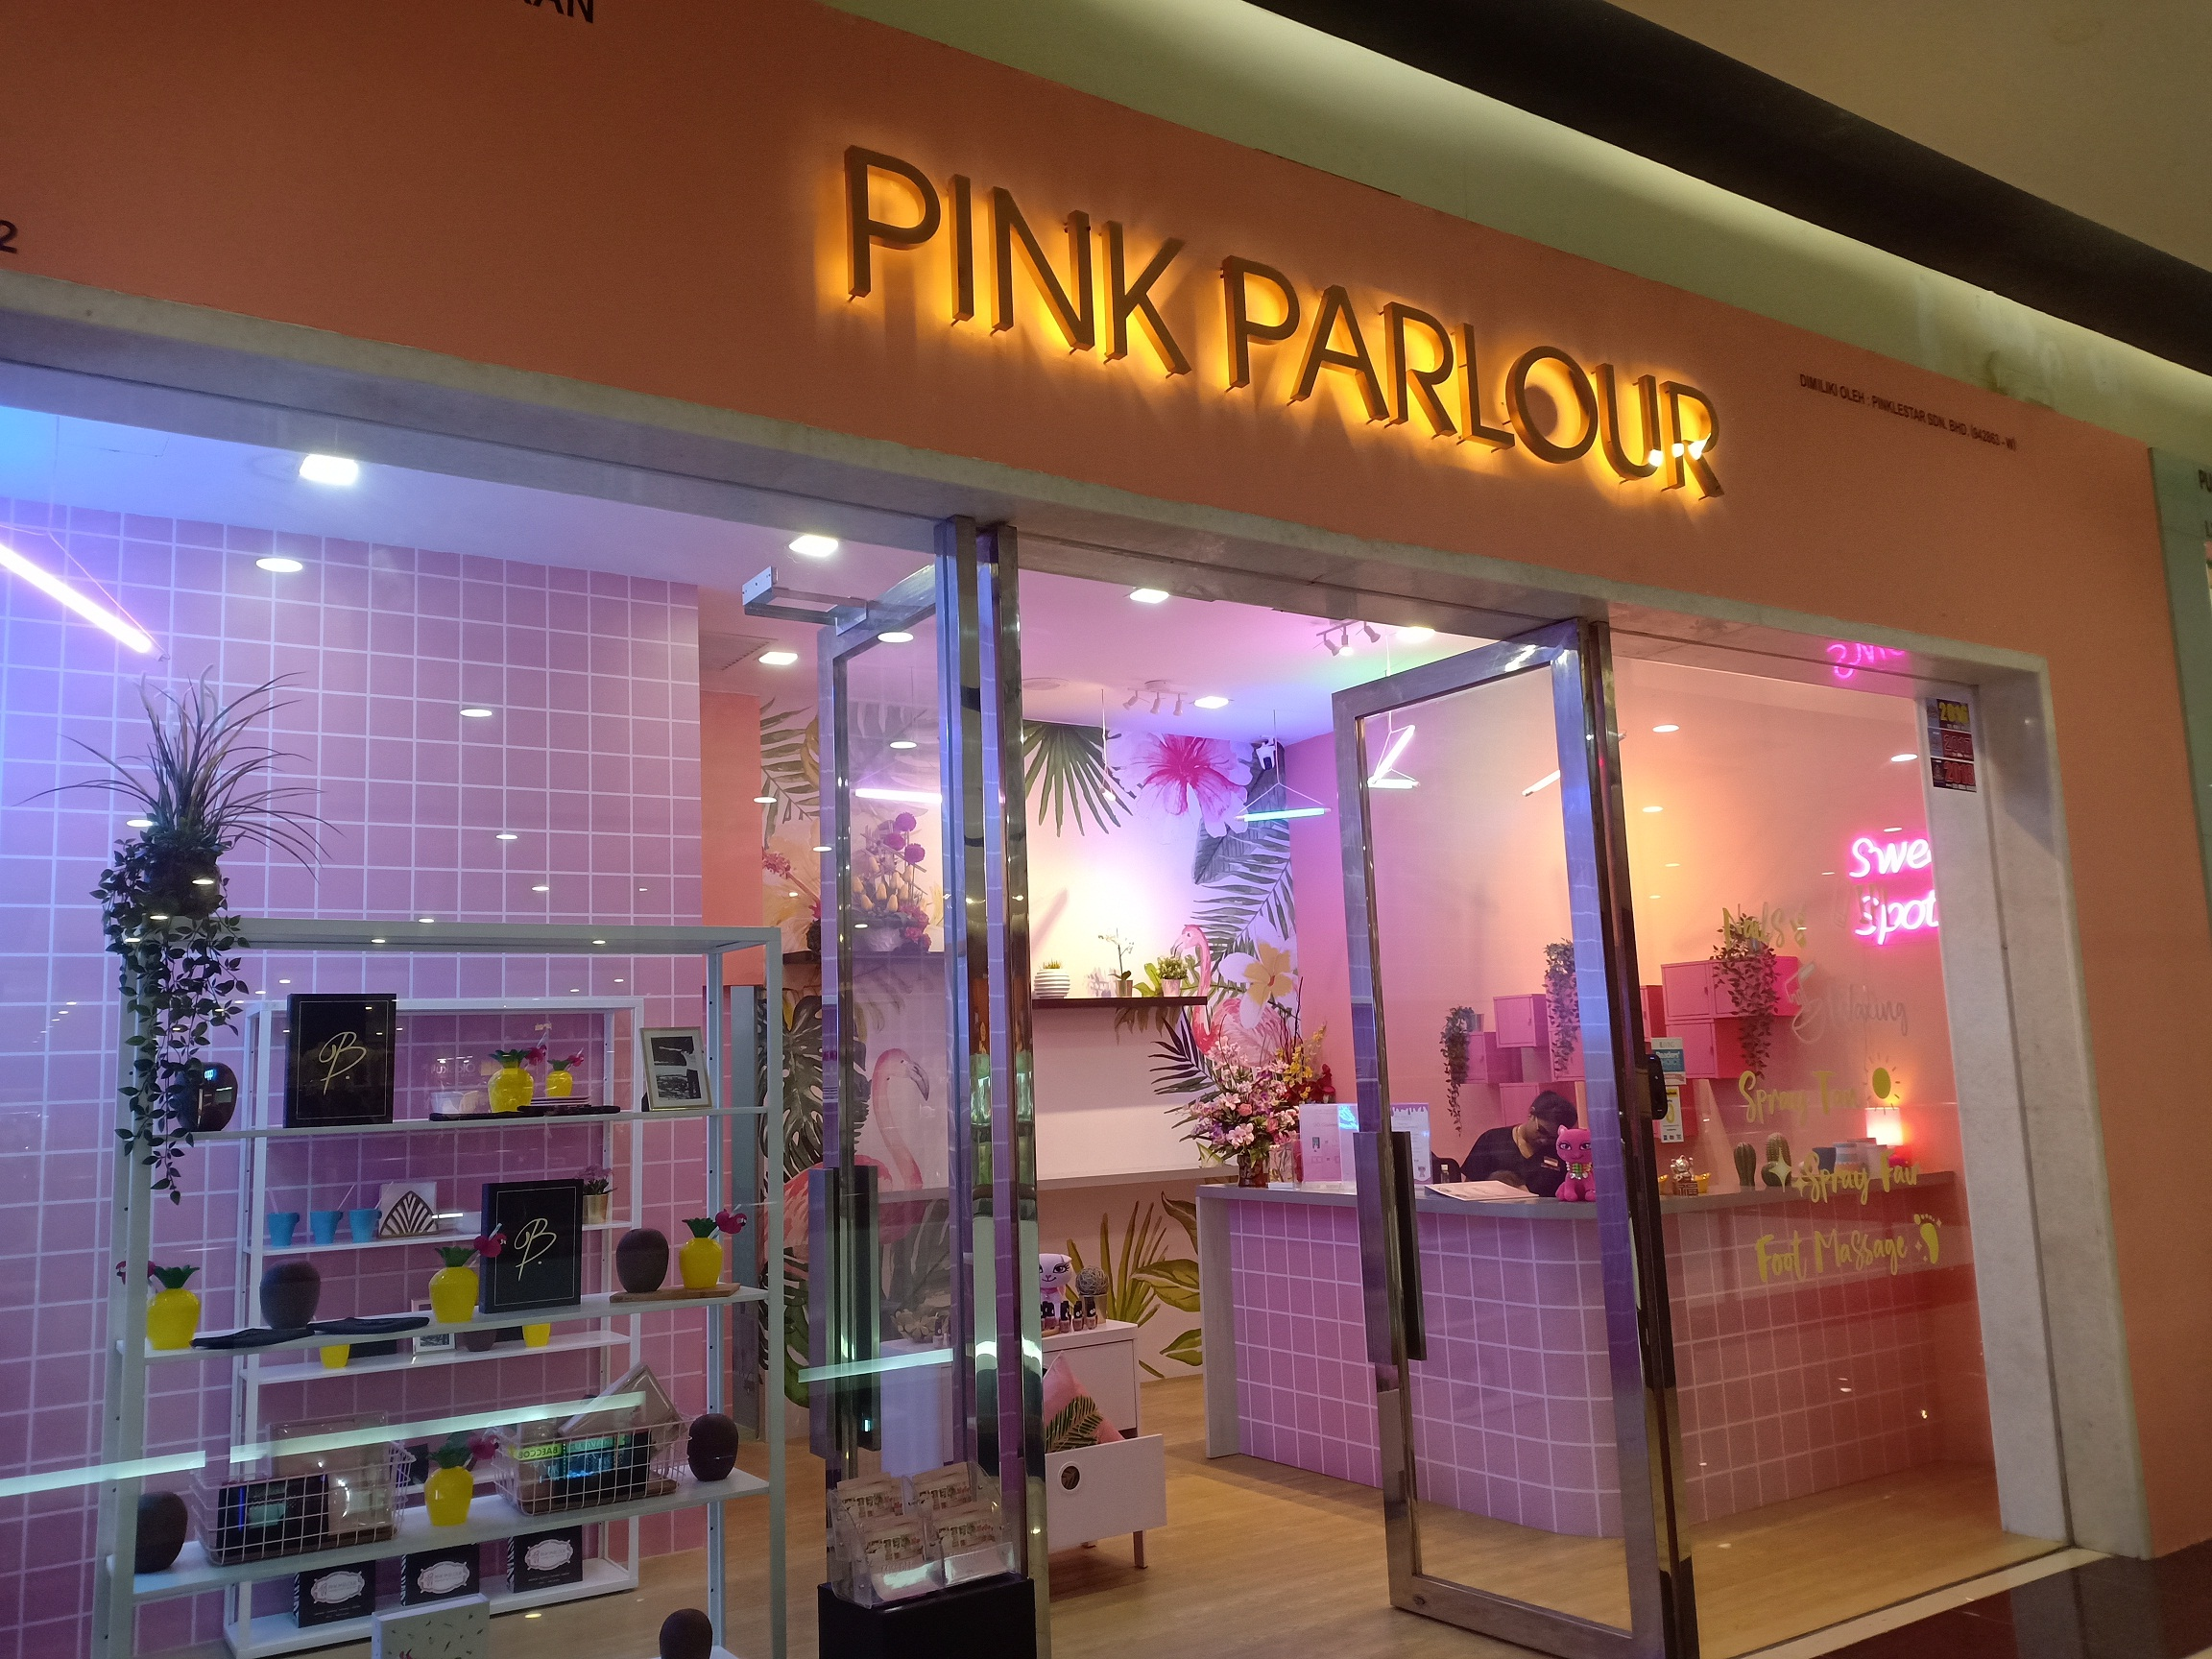 Pink Parlour